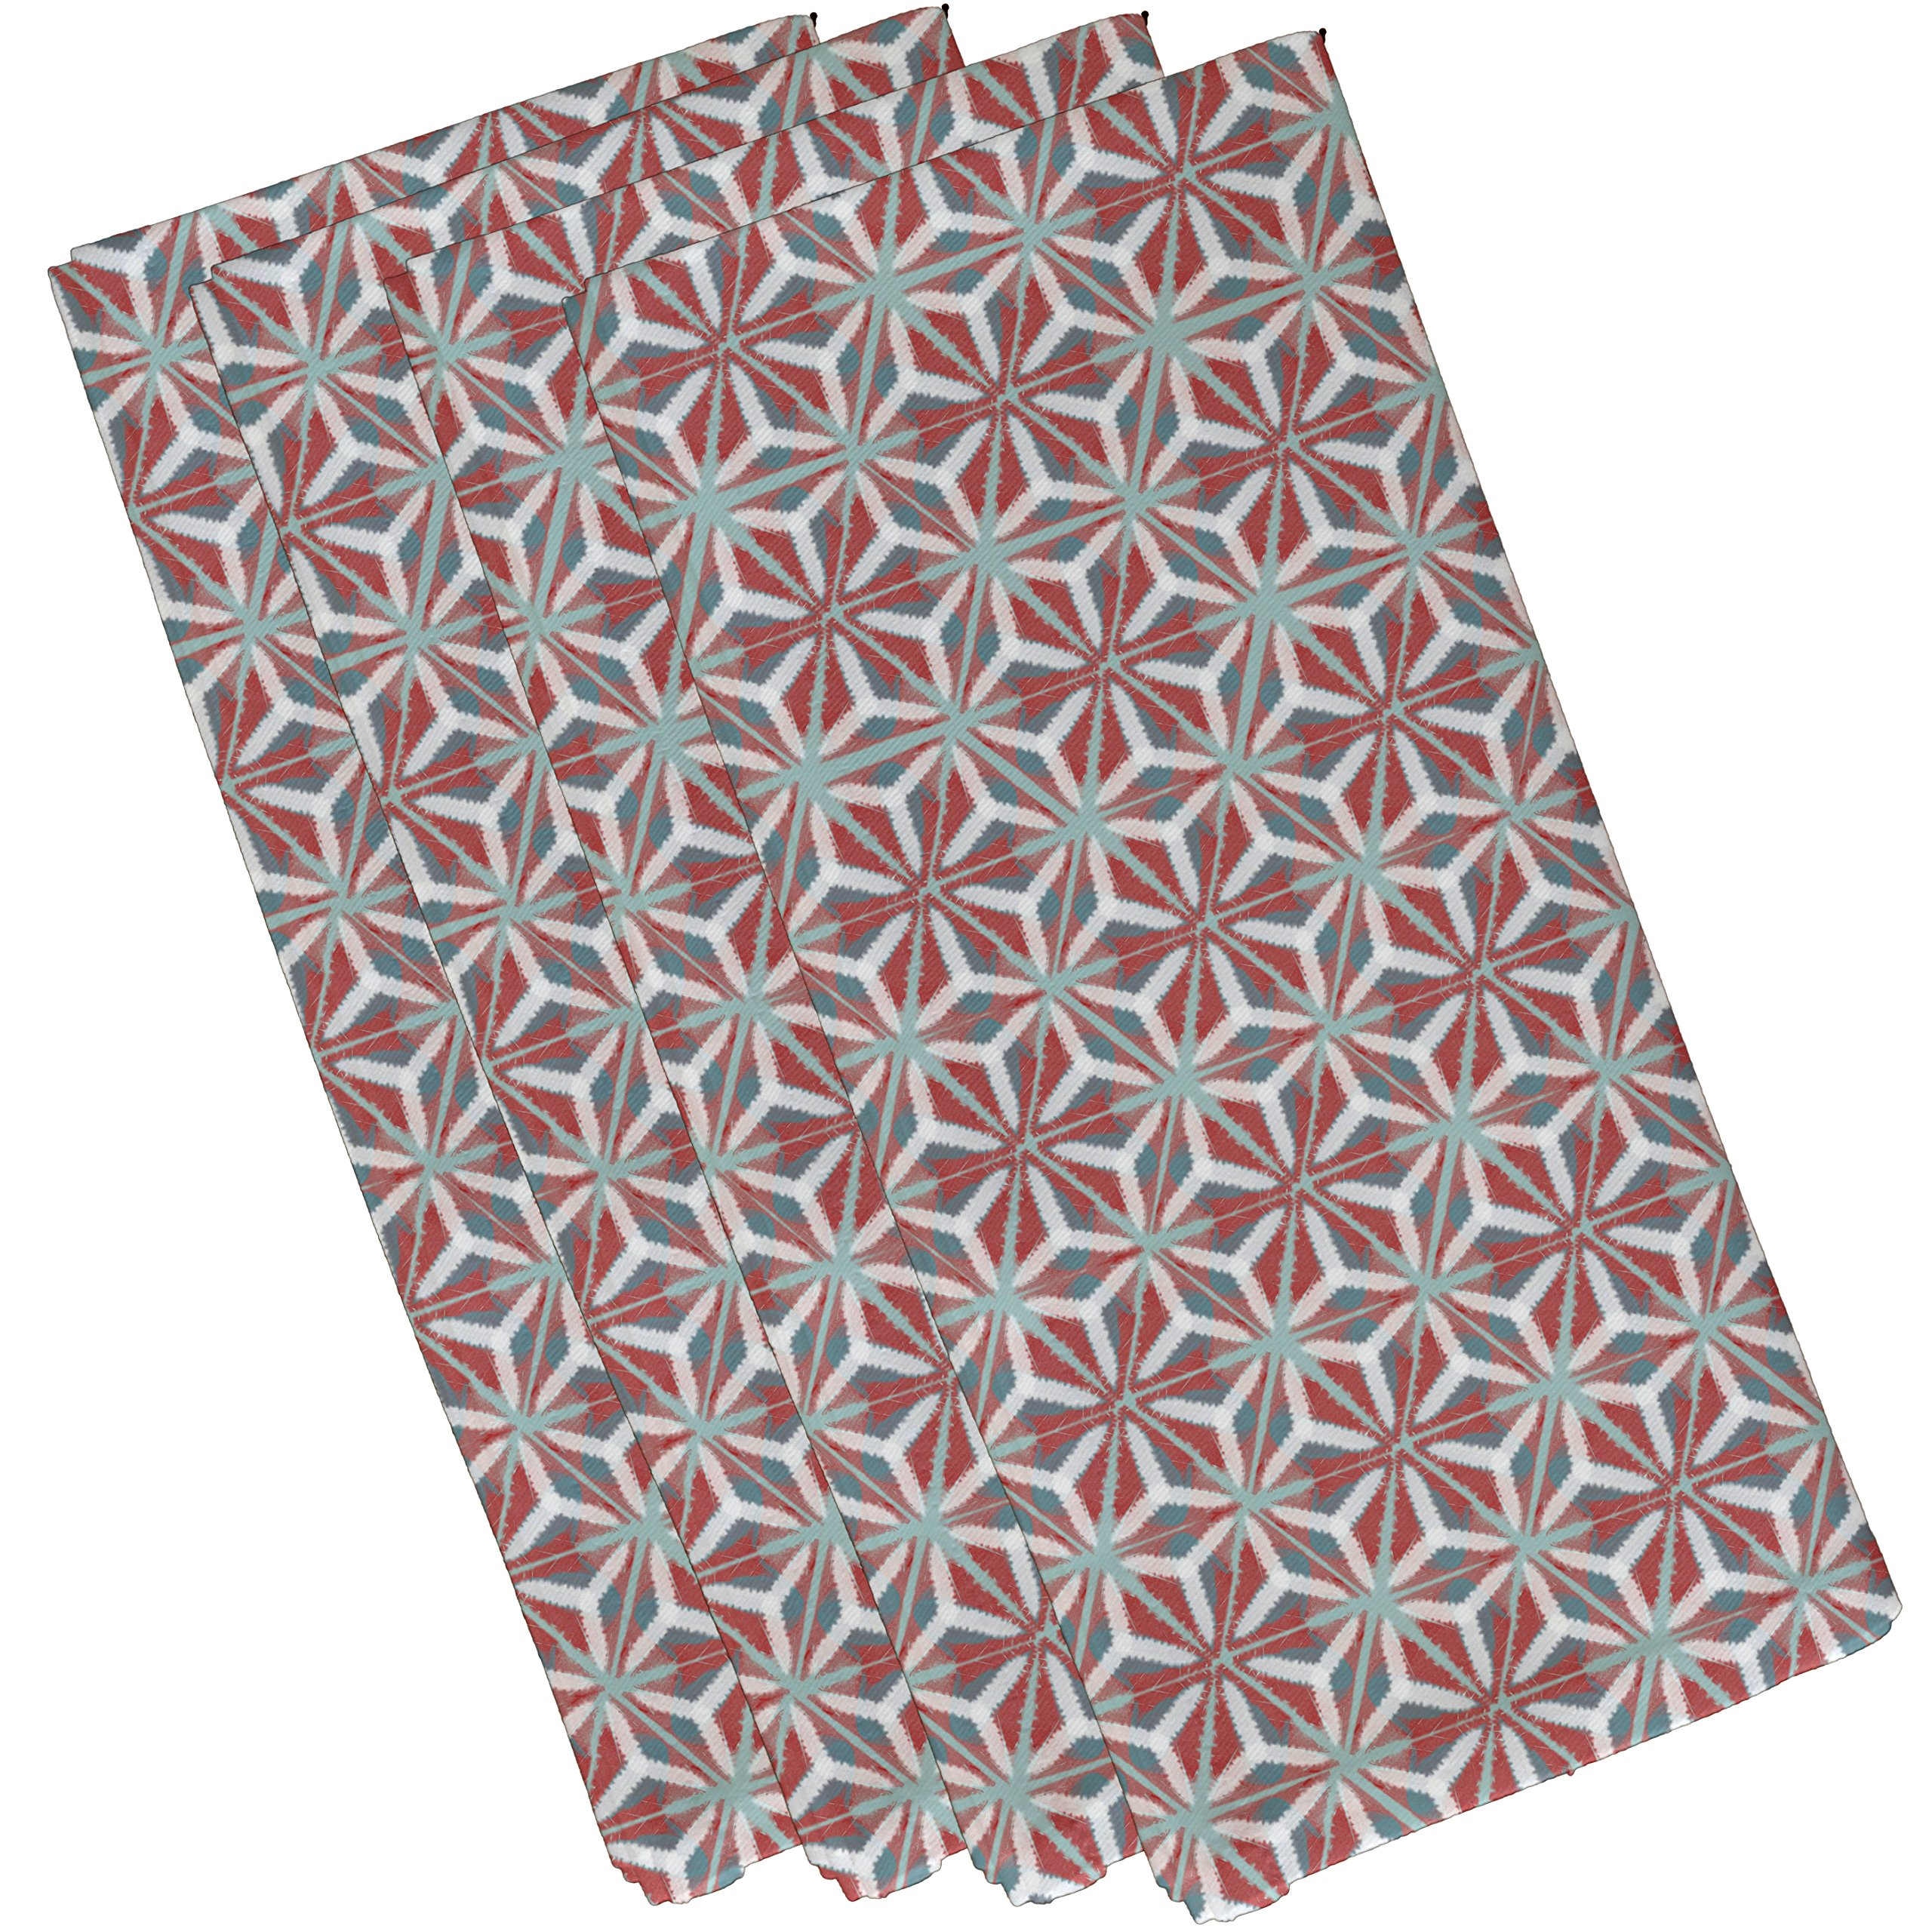 E by design N4G772OR15 Water Mosaic Geometric Print Napkin (Set of 4), 19'' x 19'', Coral by E by design